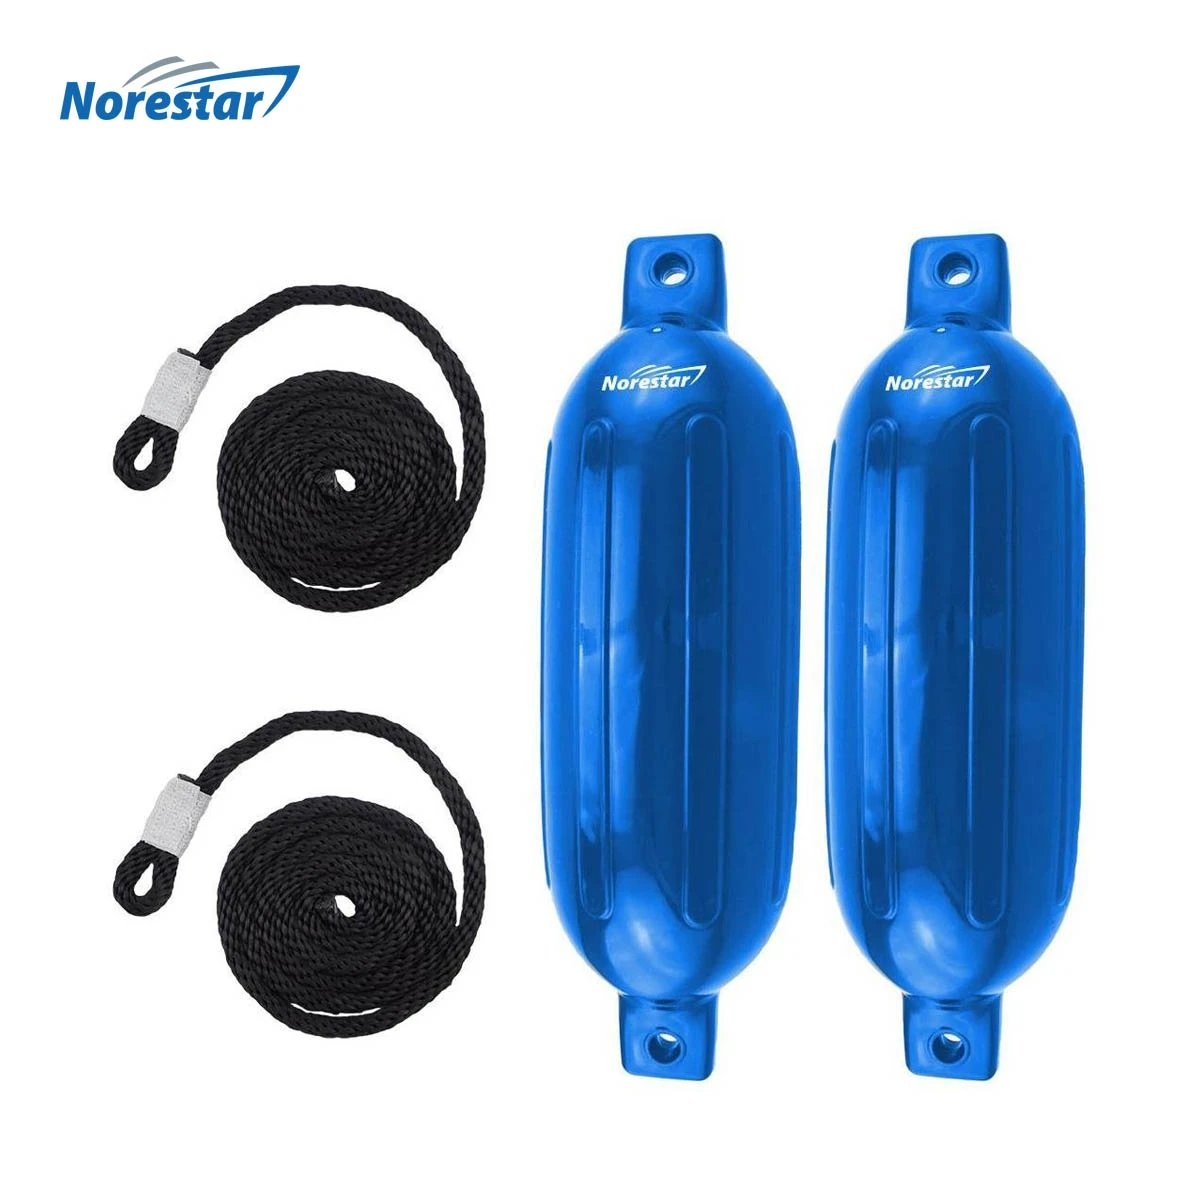 Norestar Ribbed Boat Fender - Blue